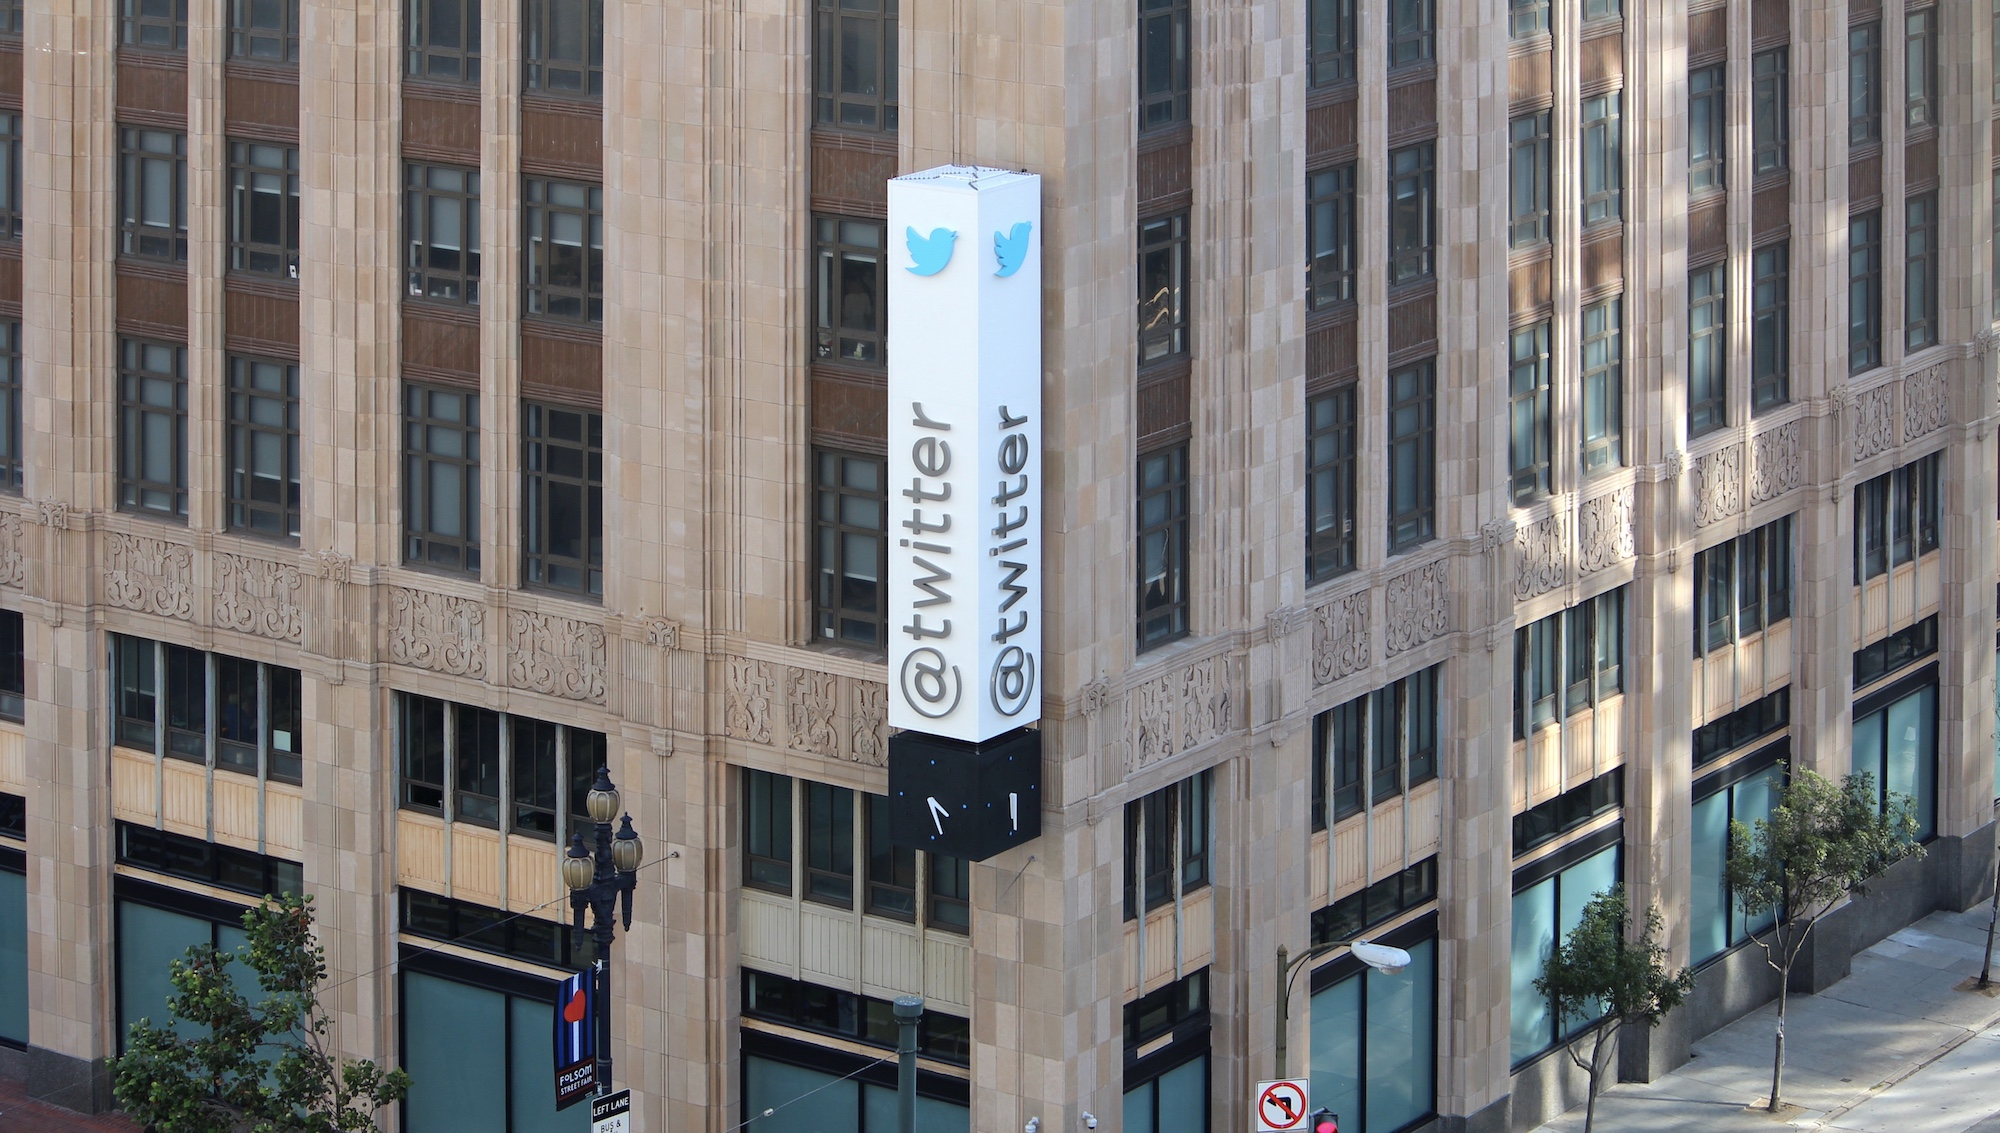 Twitter Headquarter